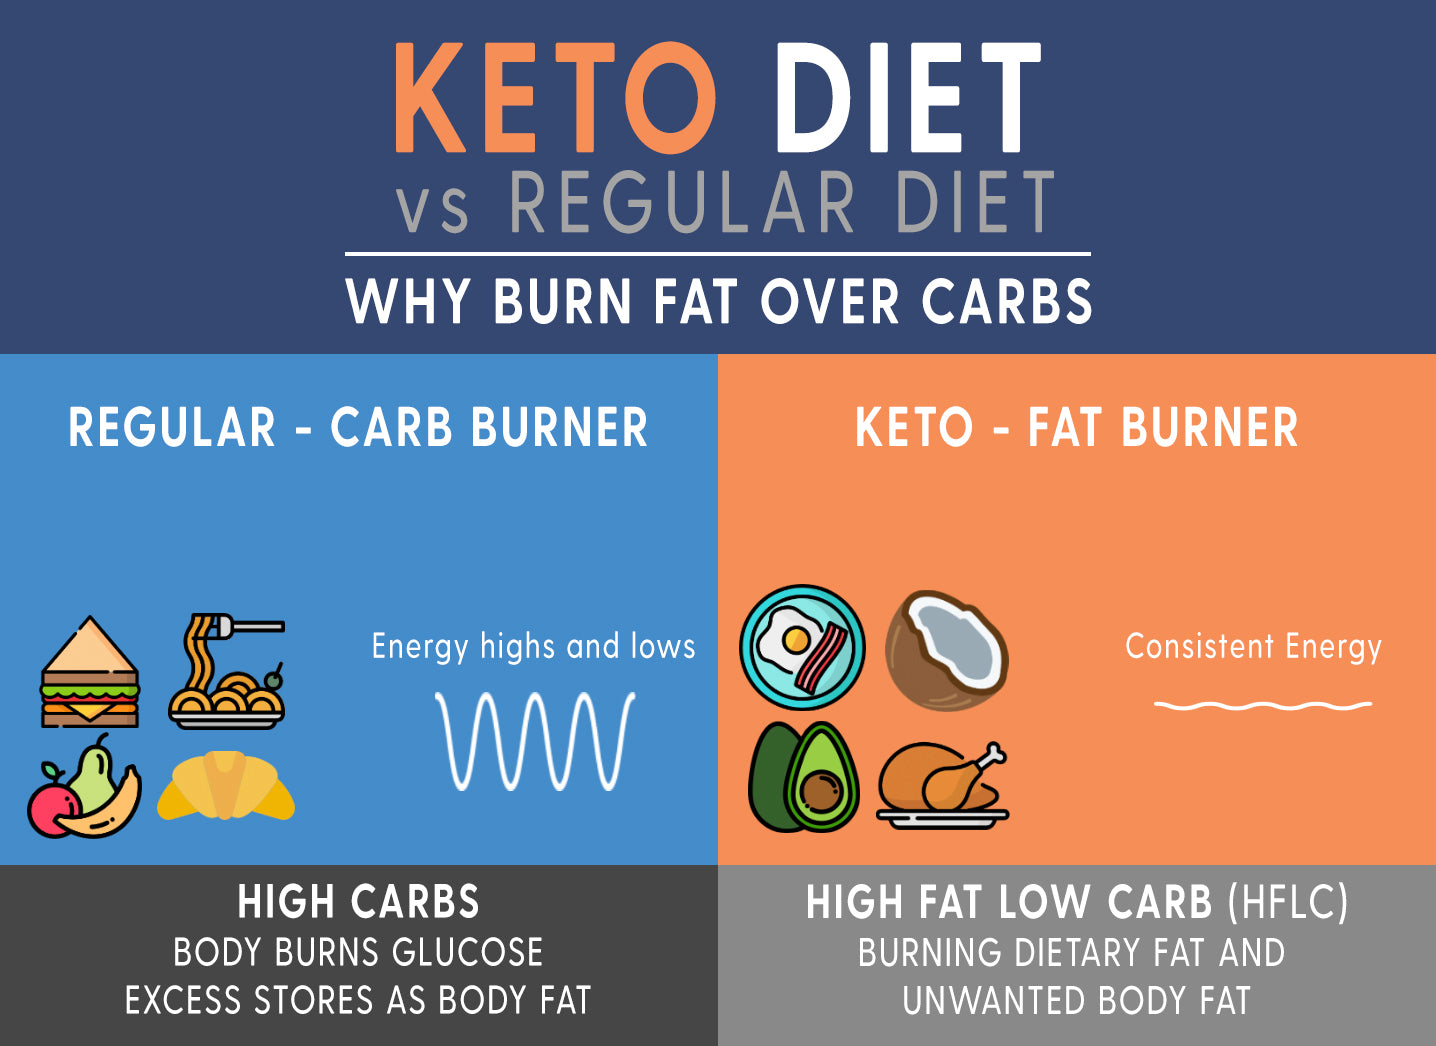 KETO VS REGULAR